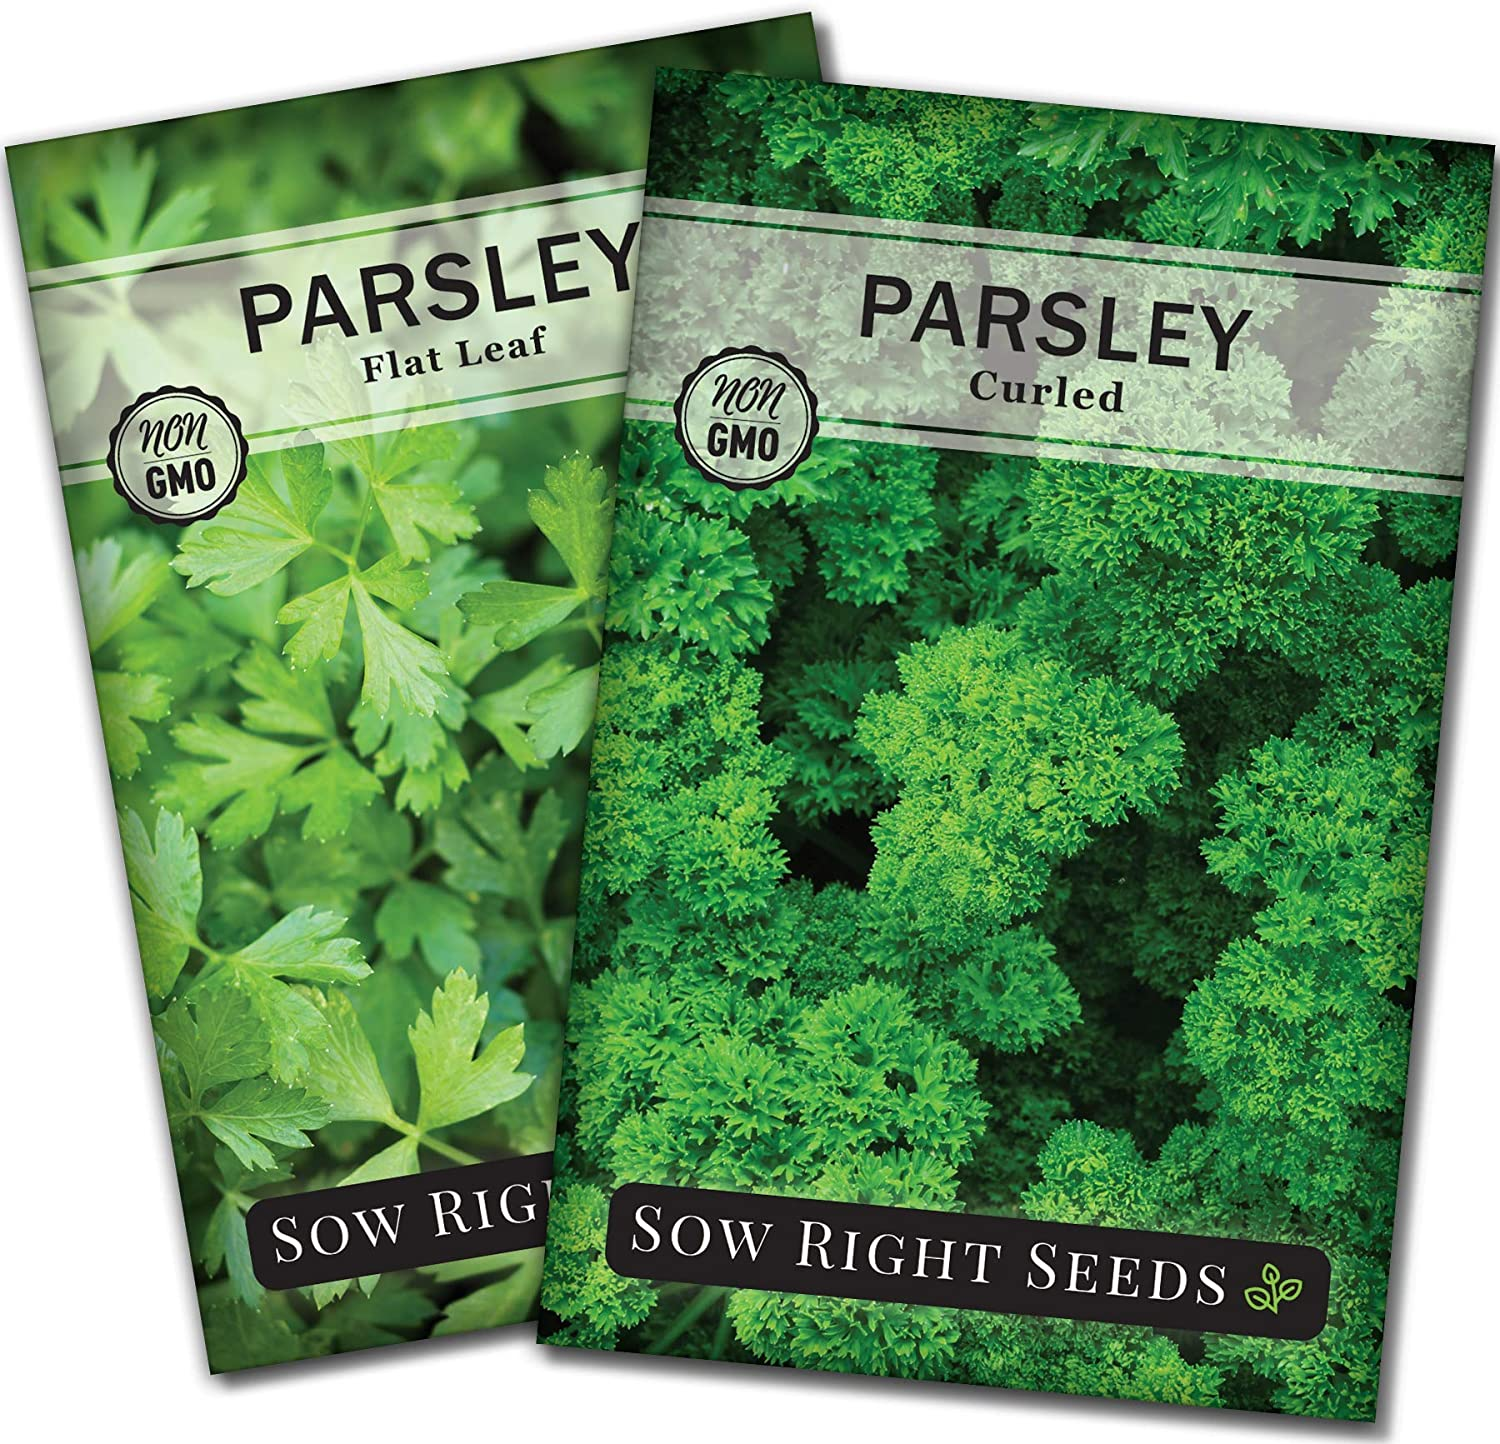 Sow Right Seeds - Flat and Curly Leaf Parsley Seed Collection for Planting - Non-GMO Heirloom - Instructions to Plant and Grow a Kitchen Herb Garden, Indoor or Outdoor; Great Gardening Gift